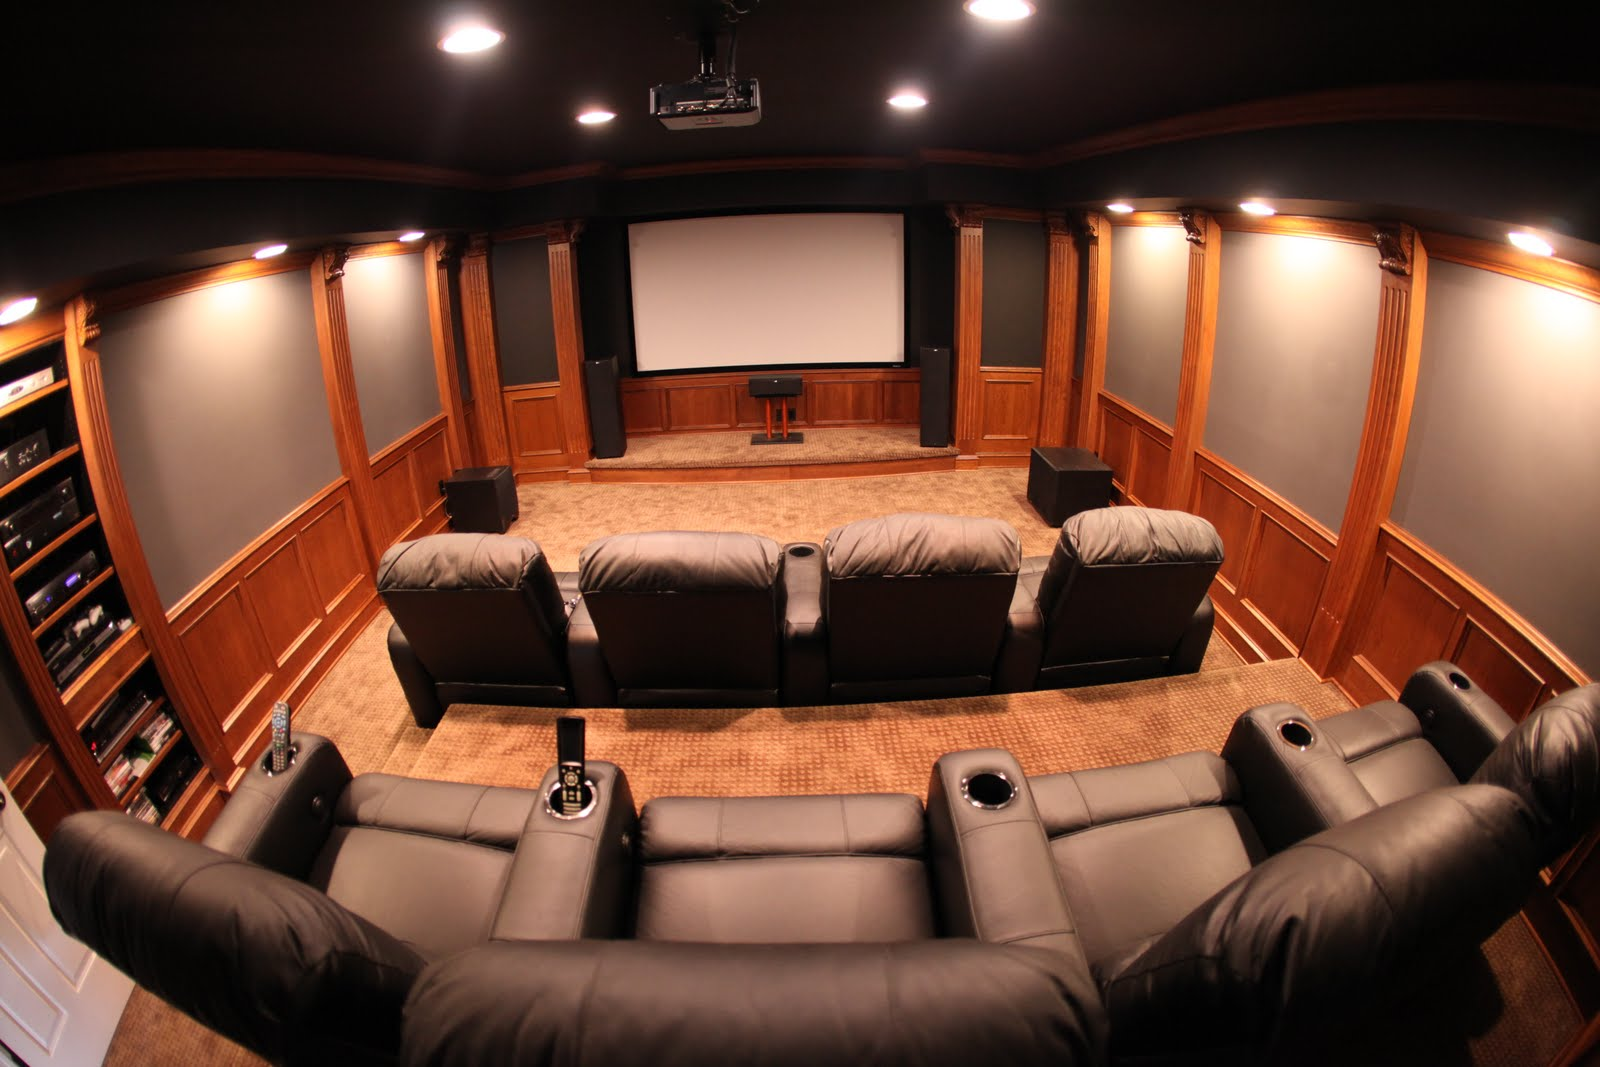 Mhi interiors theater room novi mi Home theatre room design ideas in india